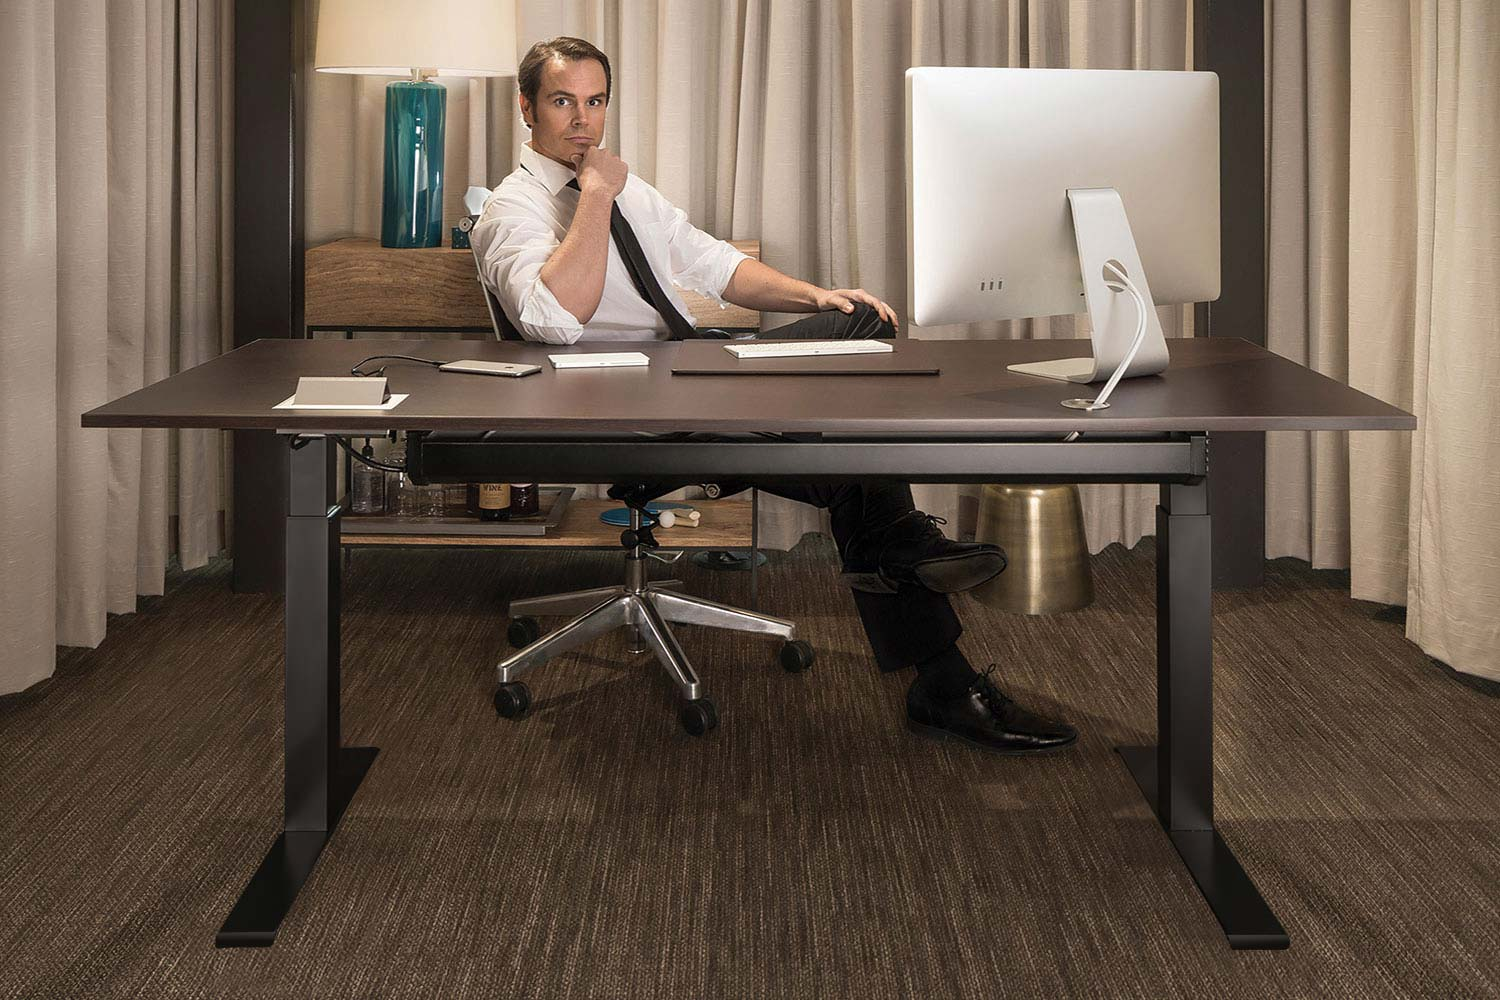 5 Major Tips For Choosing An Electric Standing Desk!